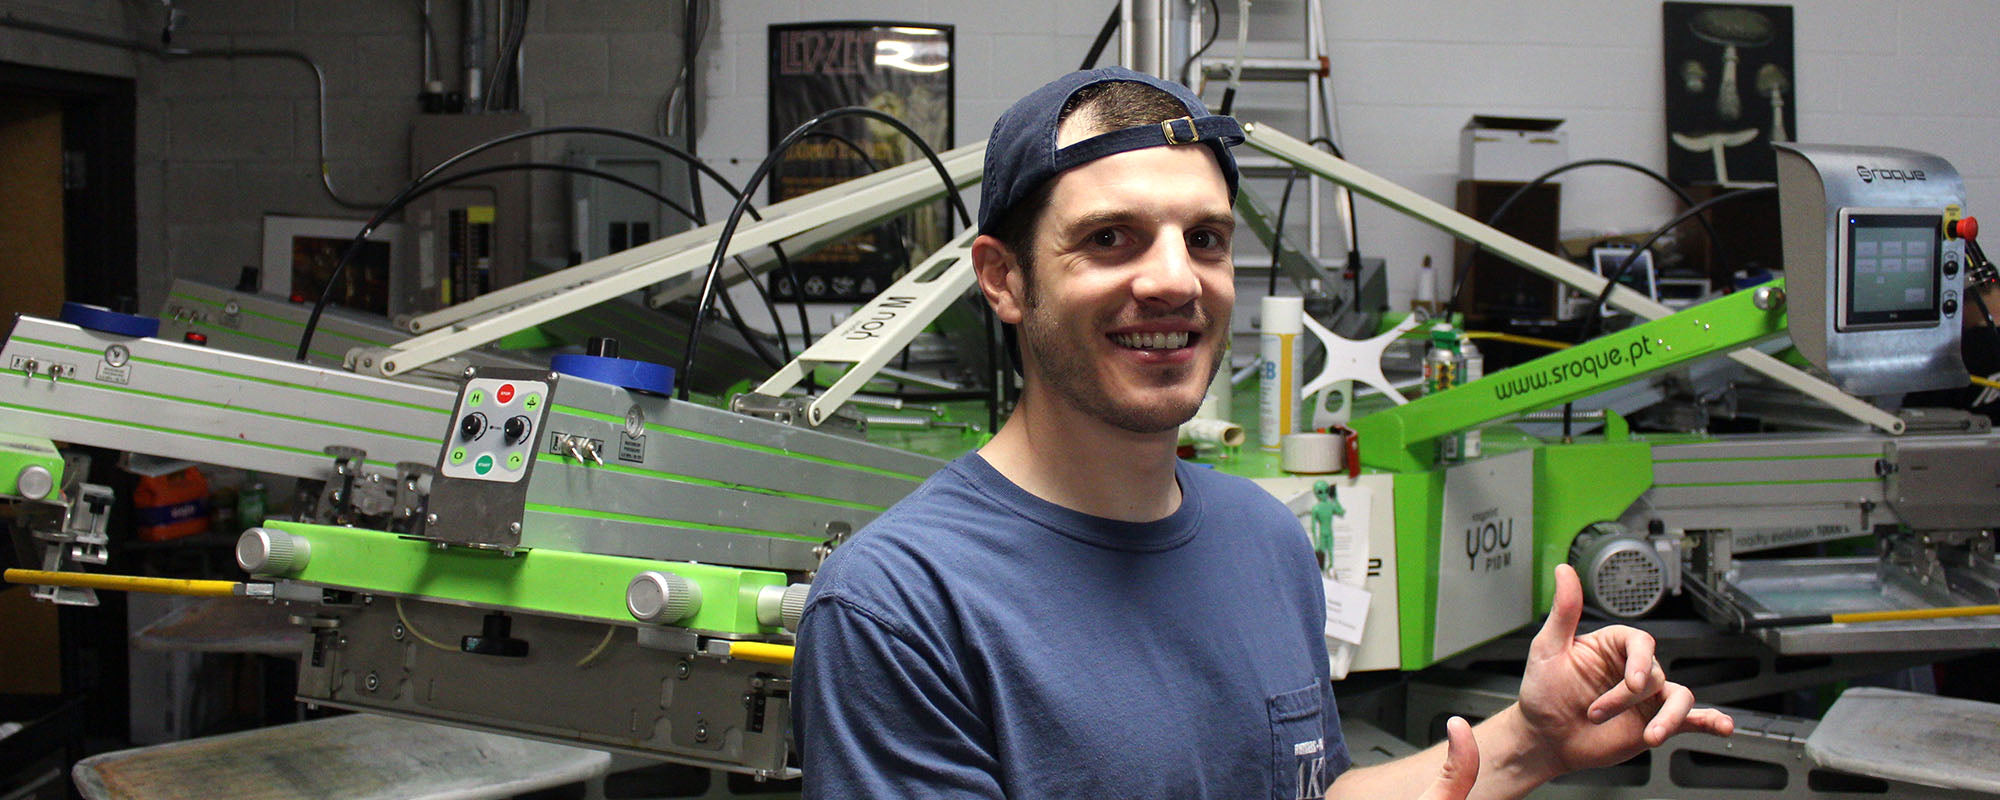 Justin Mantell is the screen printing production manager at Strange Planet Printing pictured standing in front of an 8 color automatic screen printing press made by SRoque.